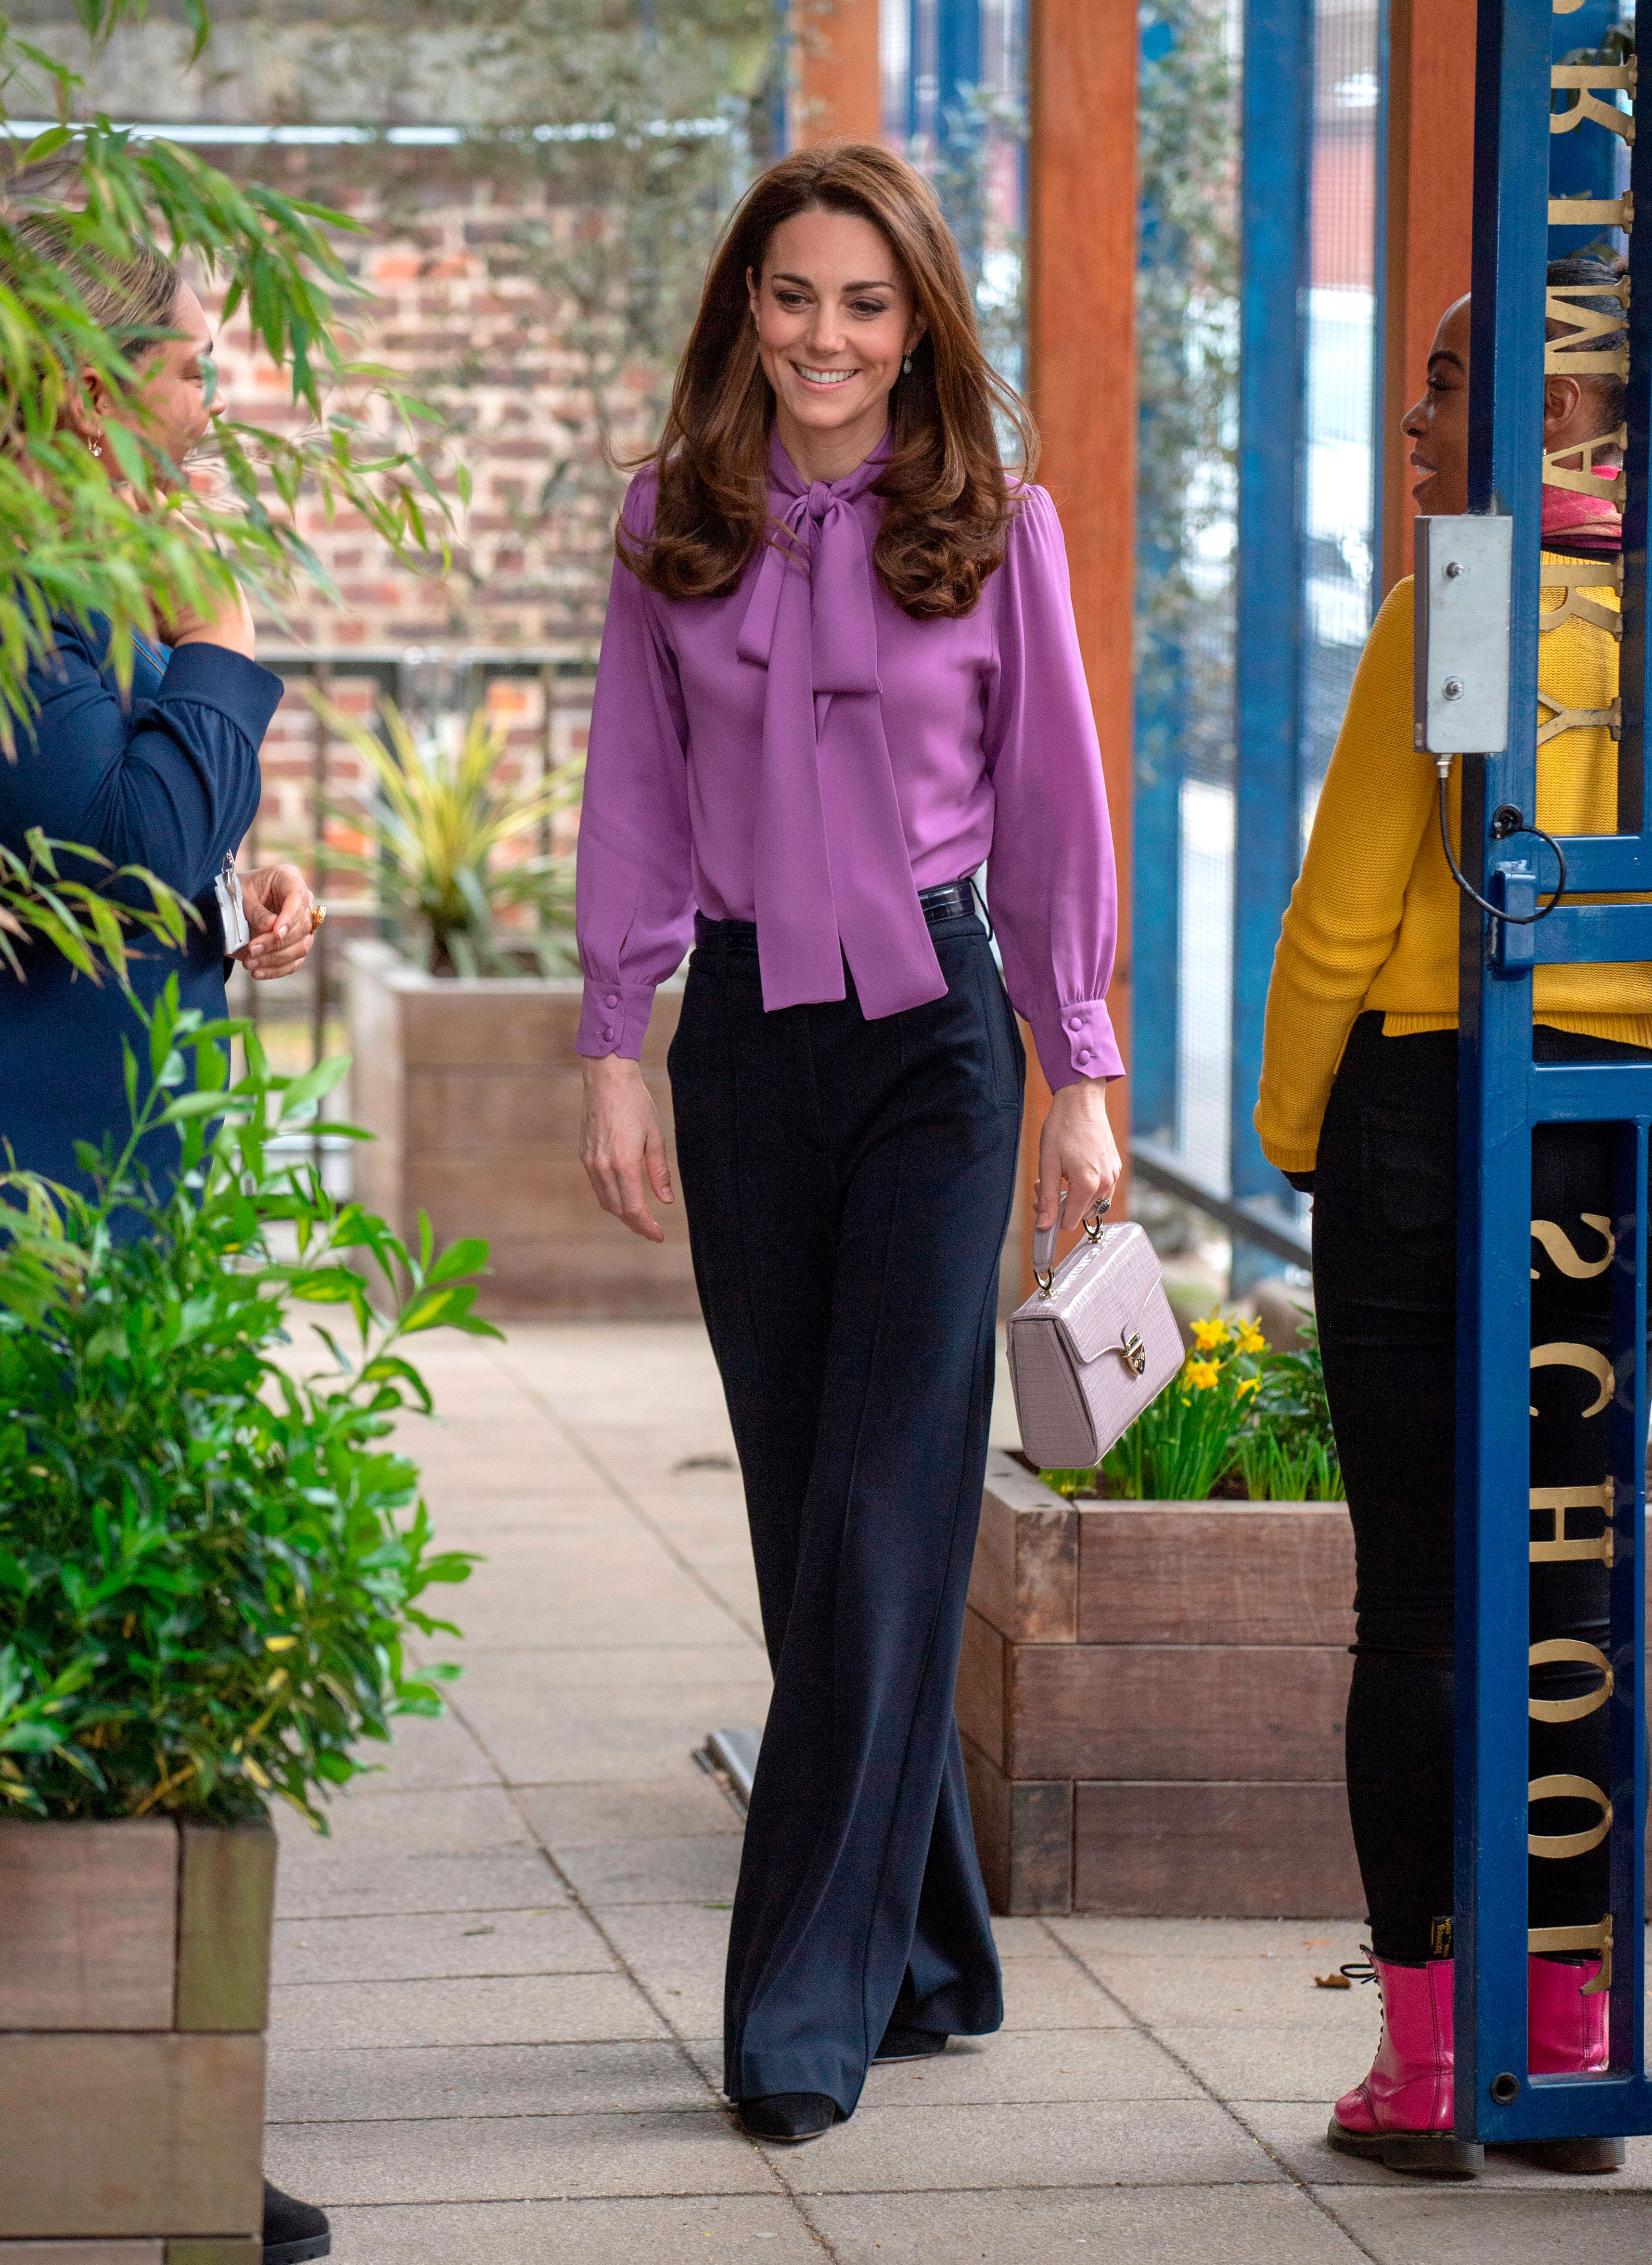 InStyle's Look of the Day picks for March 13, 2019 include Kate Middleton, Kendall Jenner and Victoria Beckham.